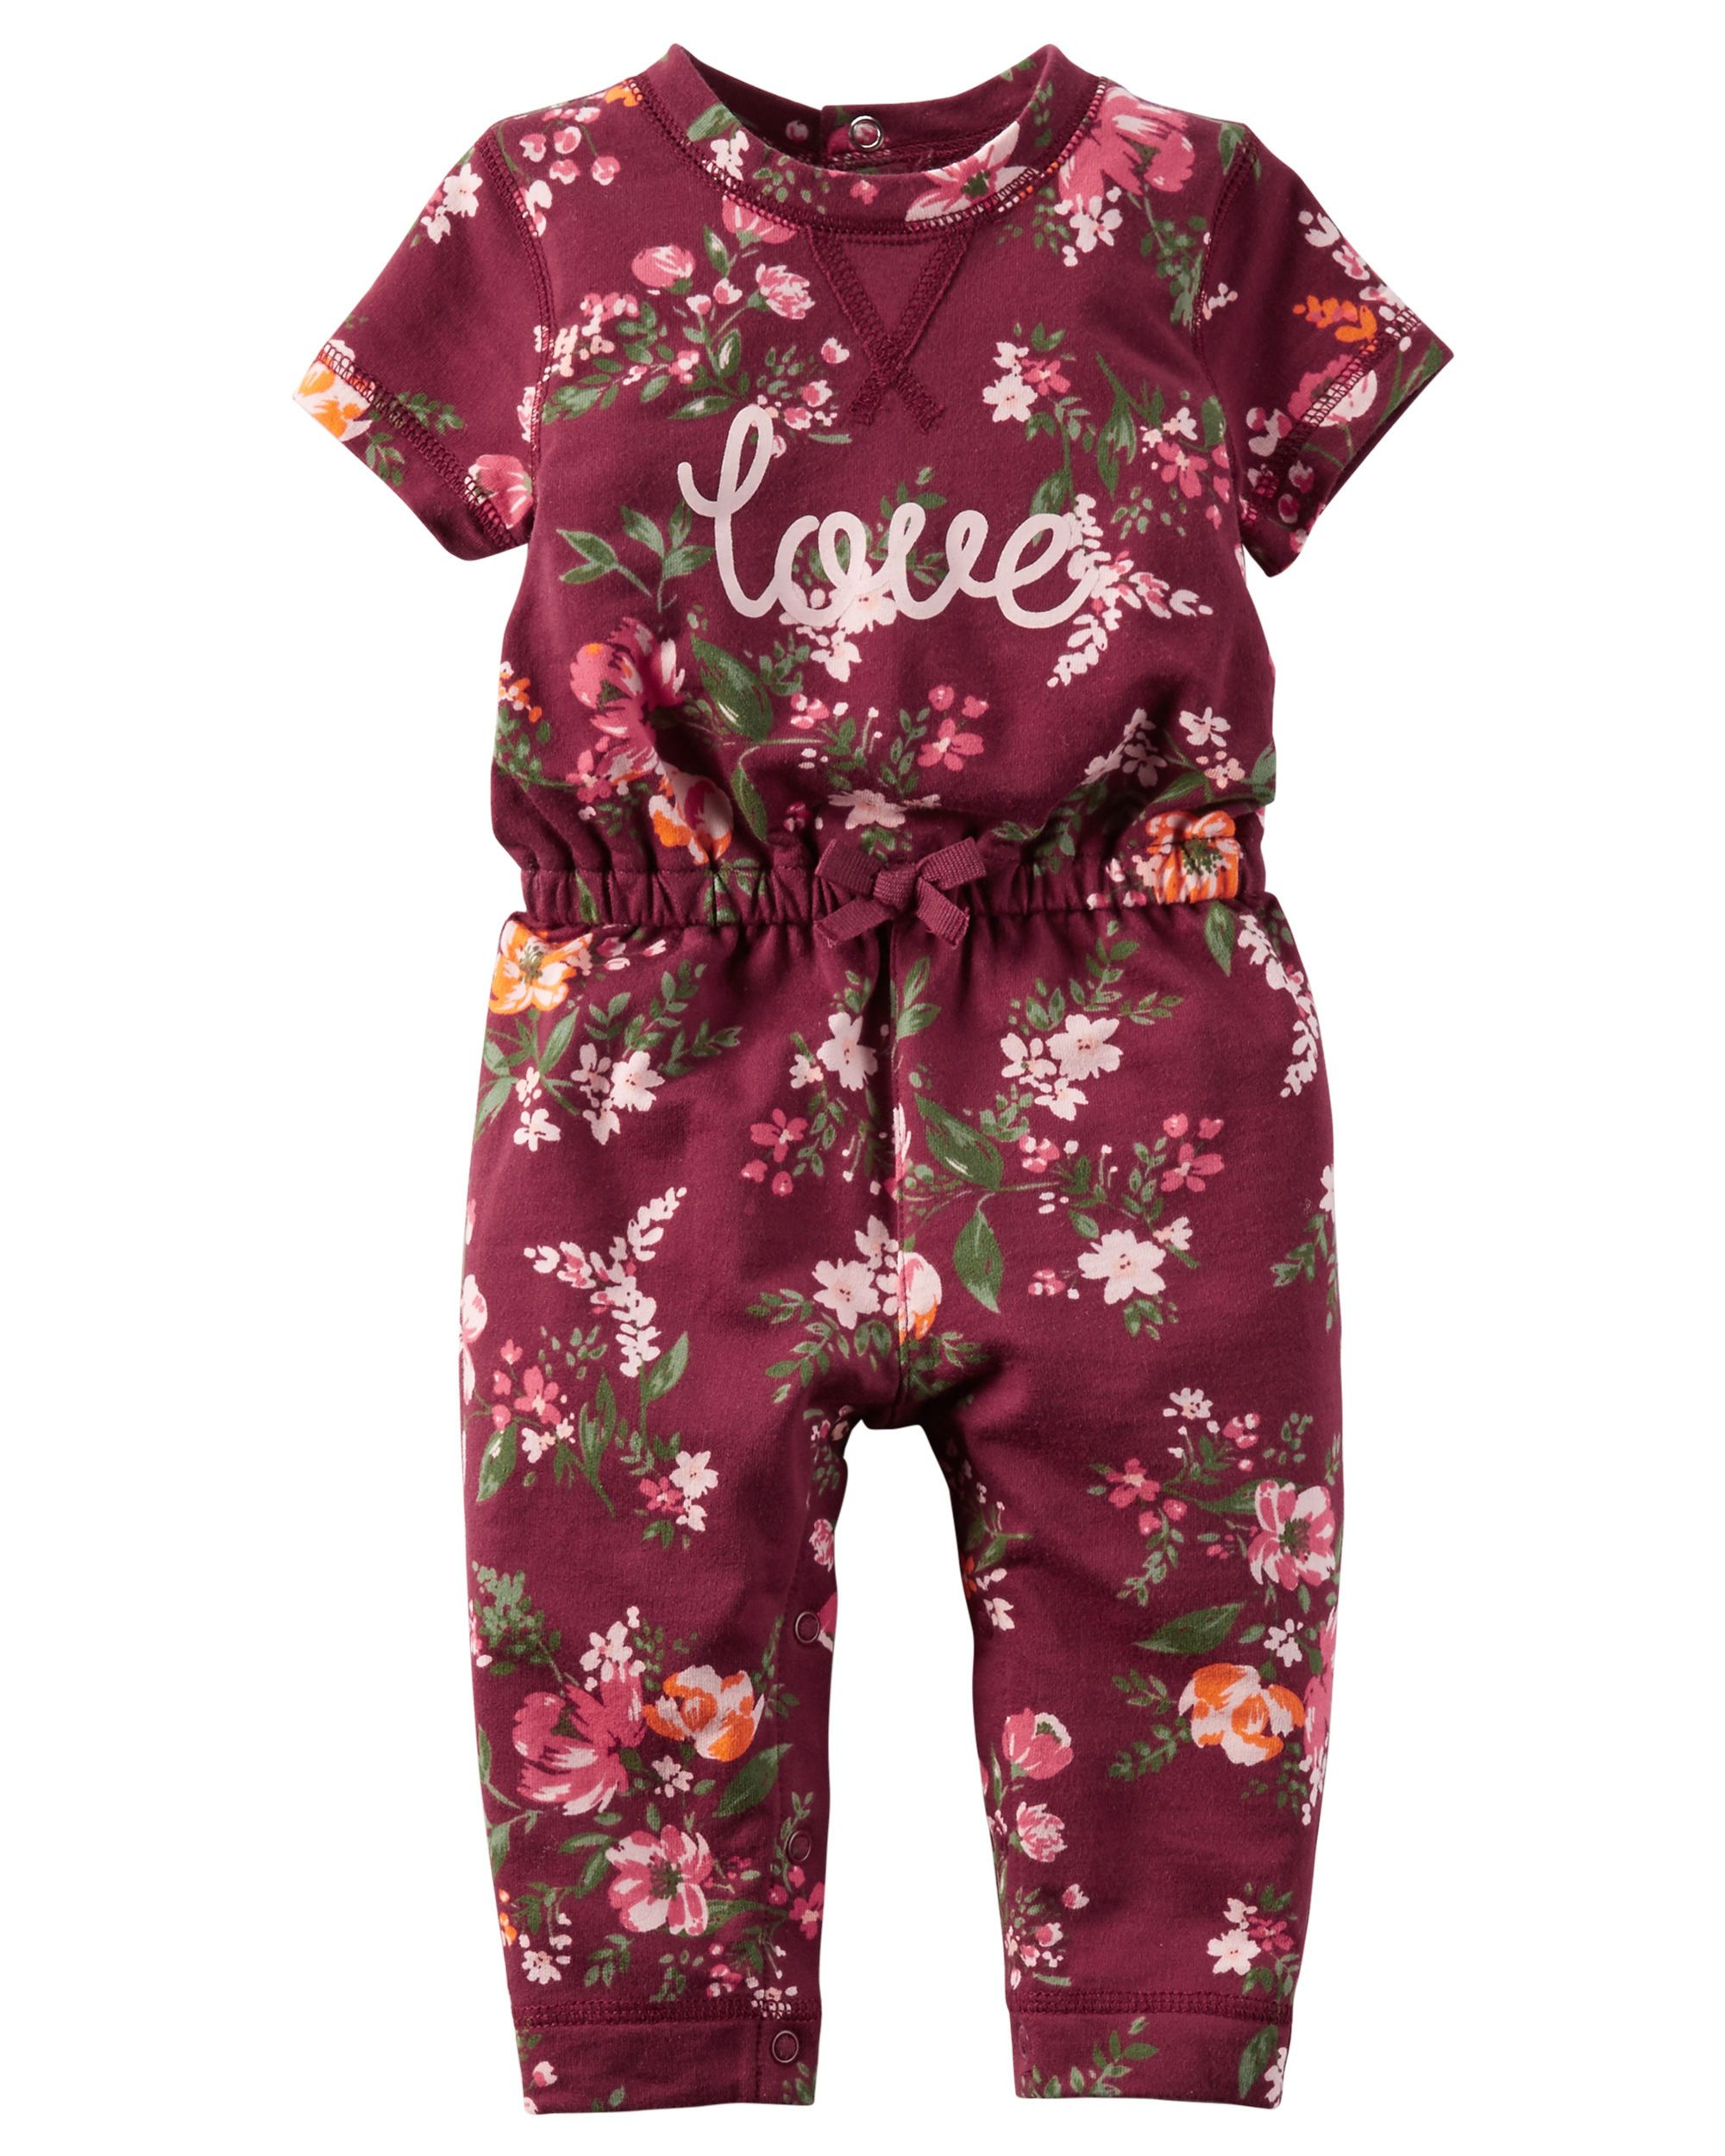 a6c874f41 In an allover floral print with a sweet slogan